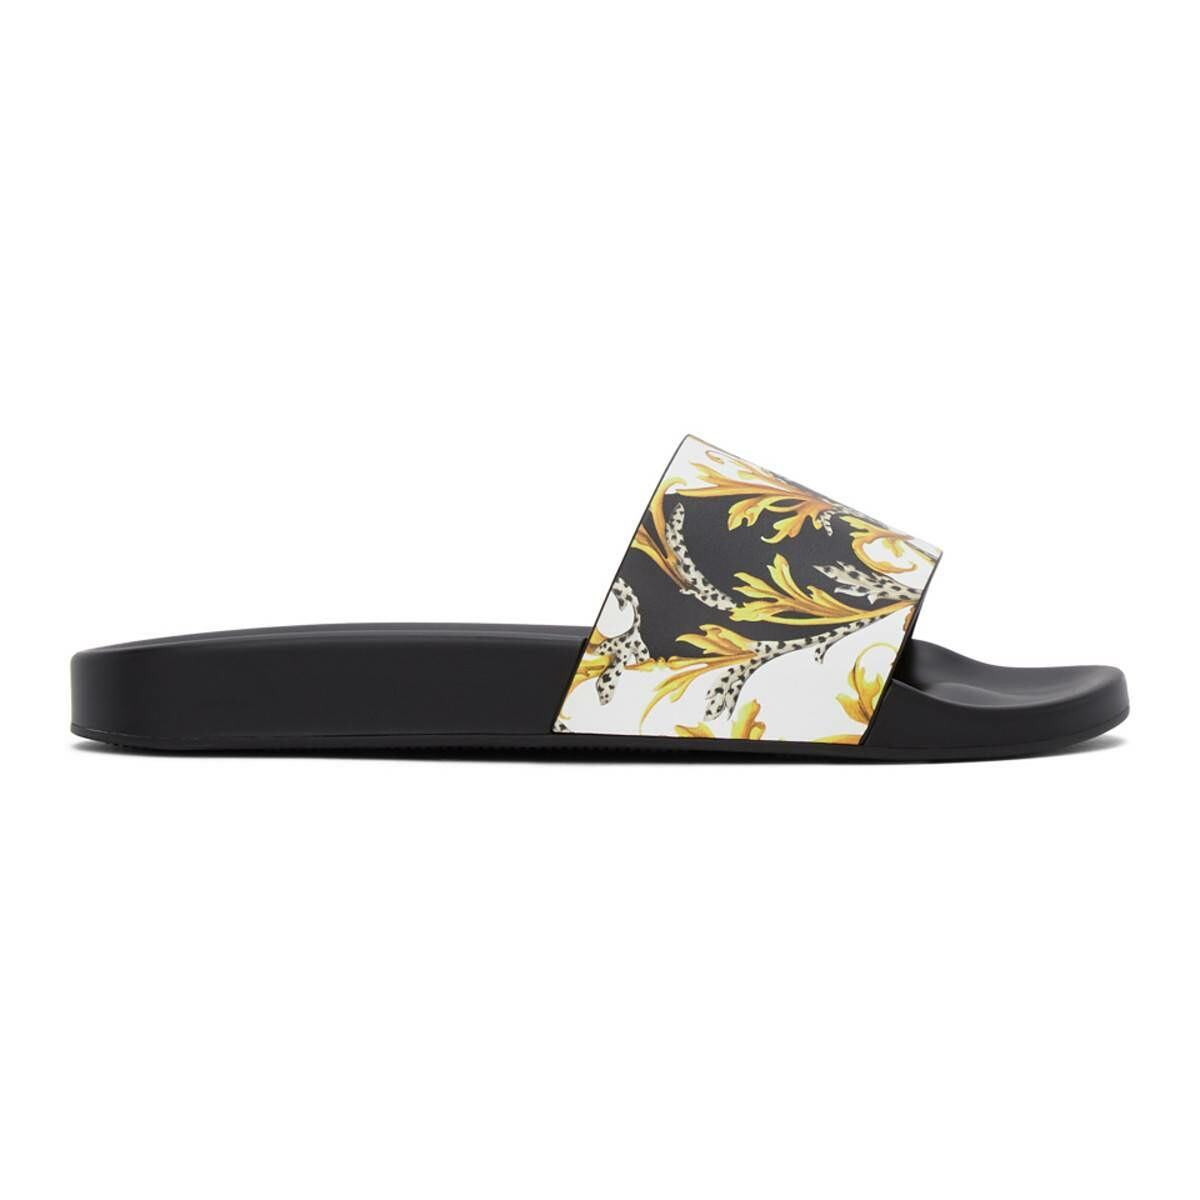 Versace Black and Gold Barocco Slides Ssense USA MEN Men SHOES Mens SANDALS